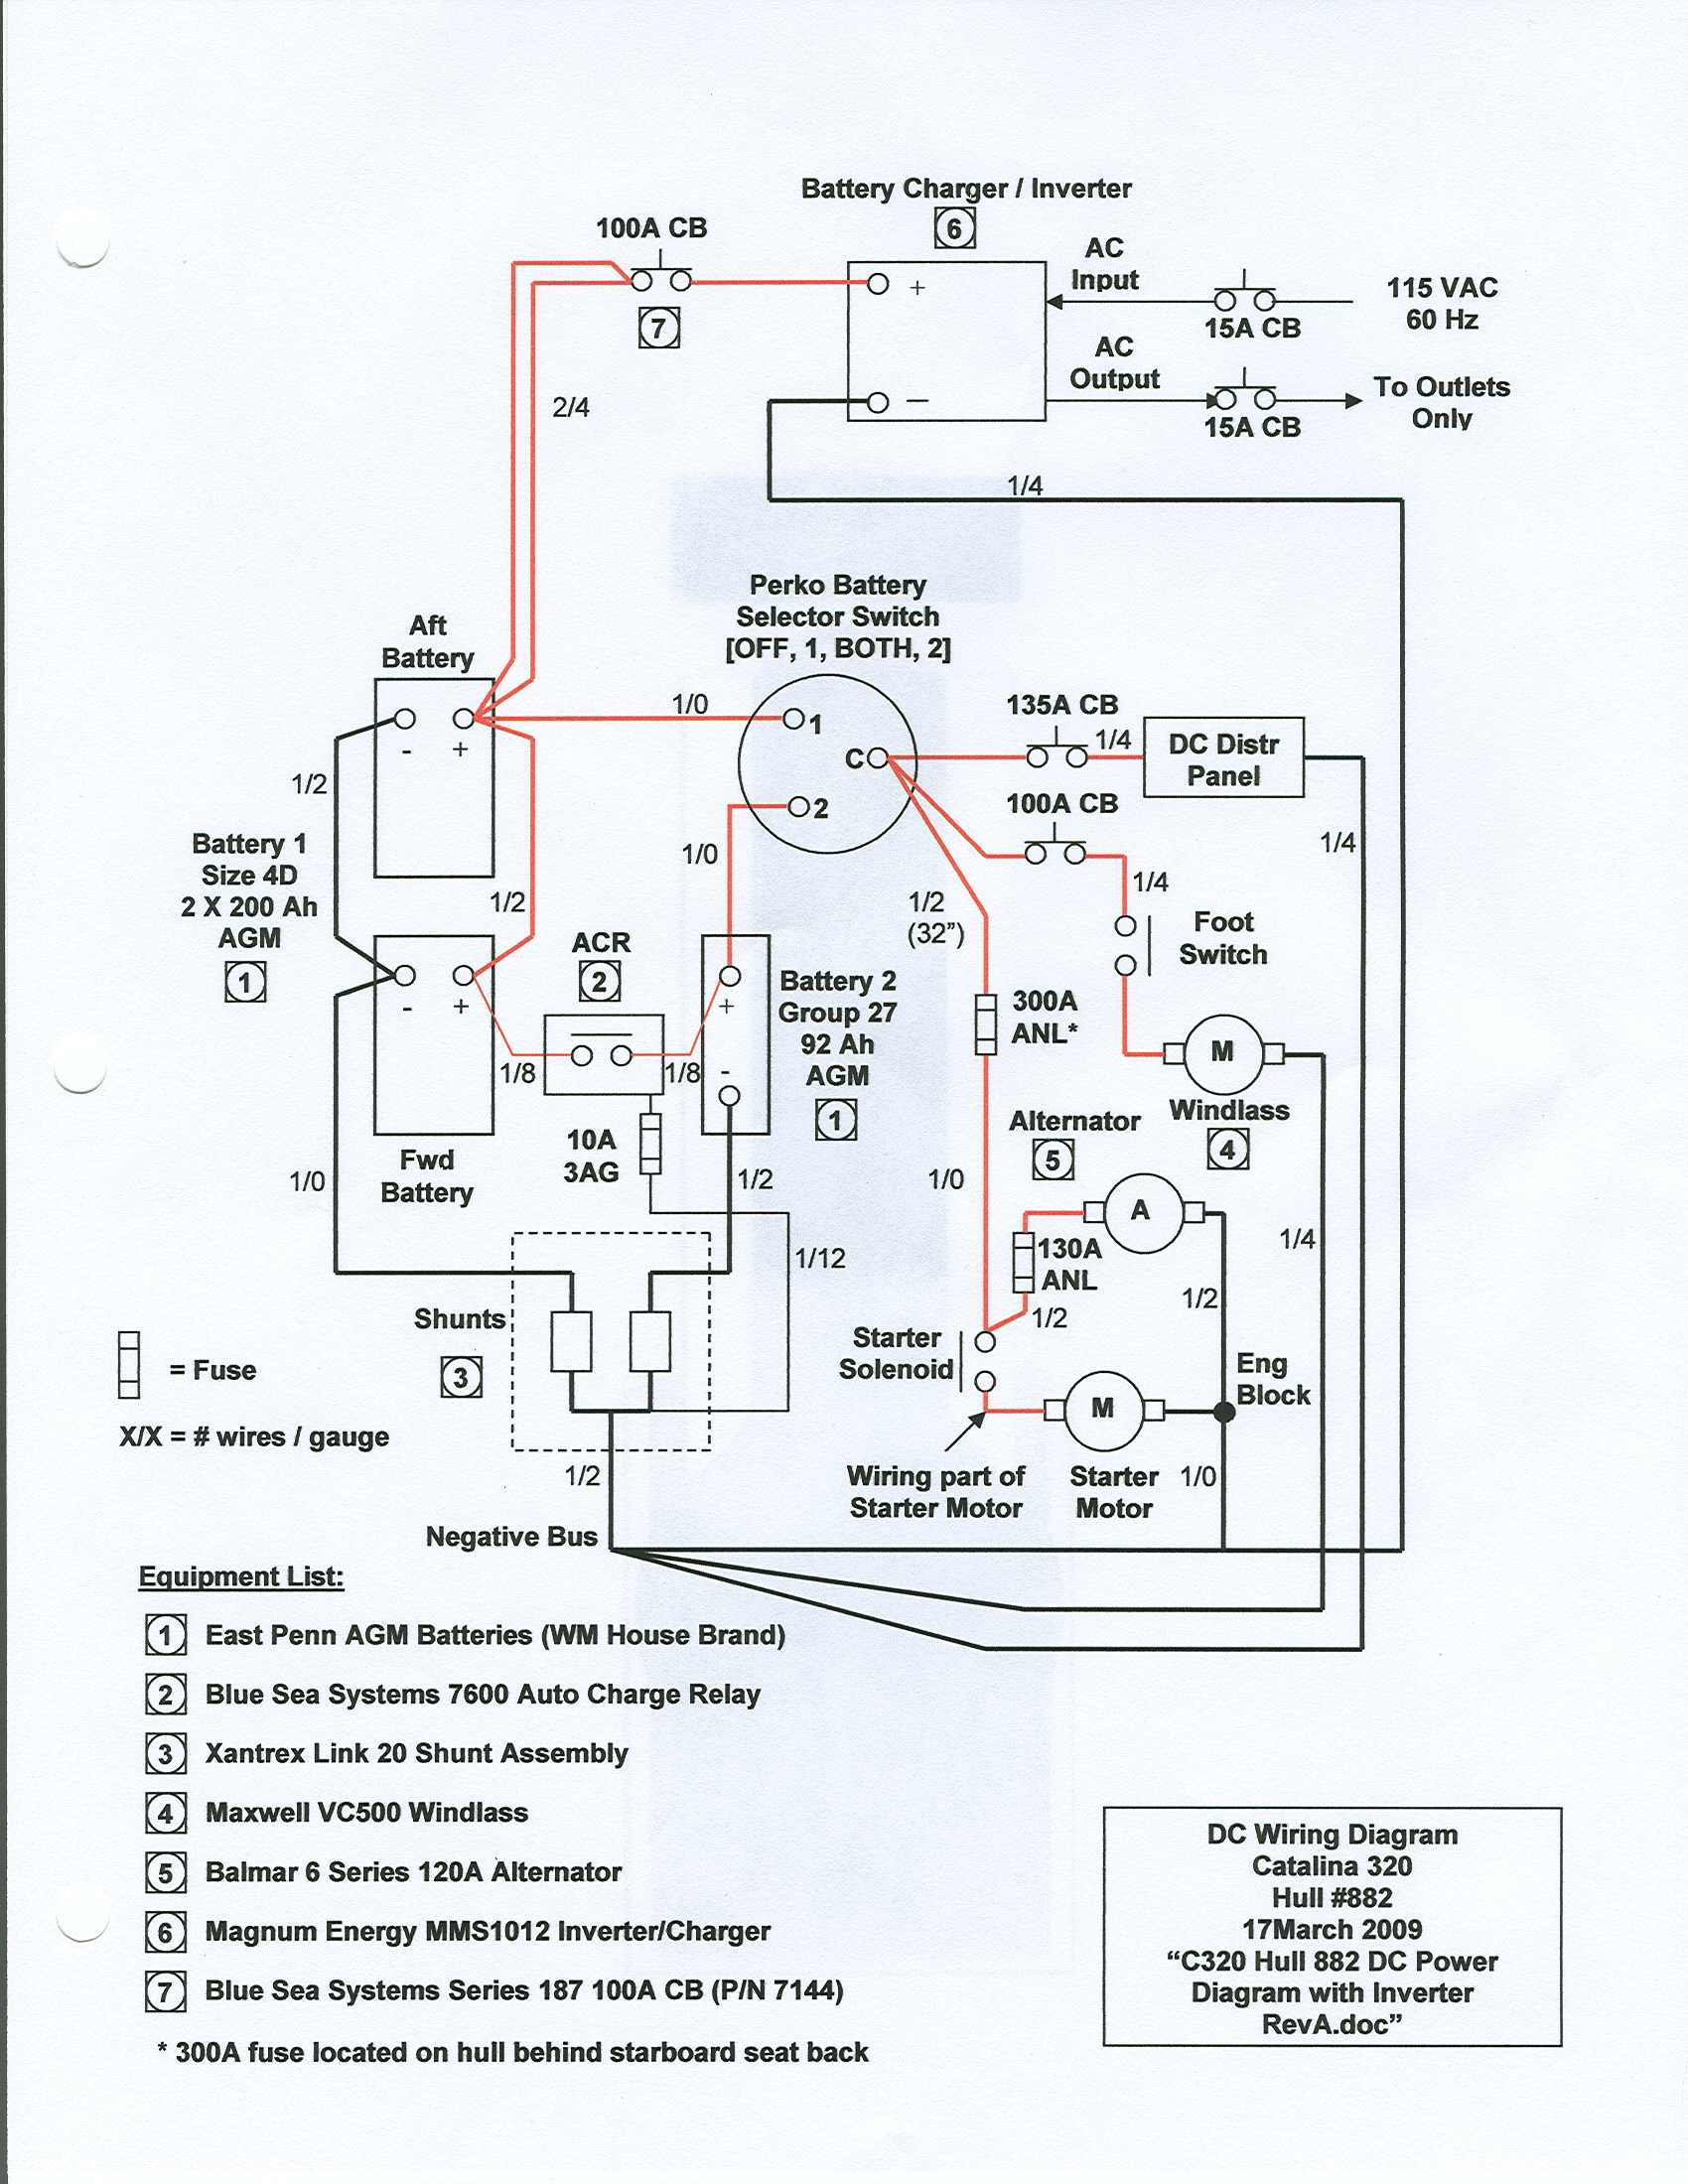 Dc Wiring Diagram With Starting Battery And Inverter Charger Close